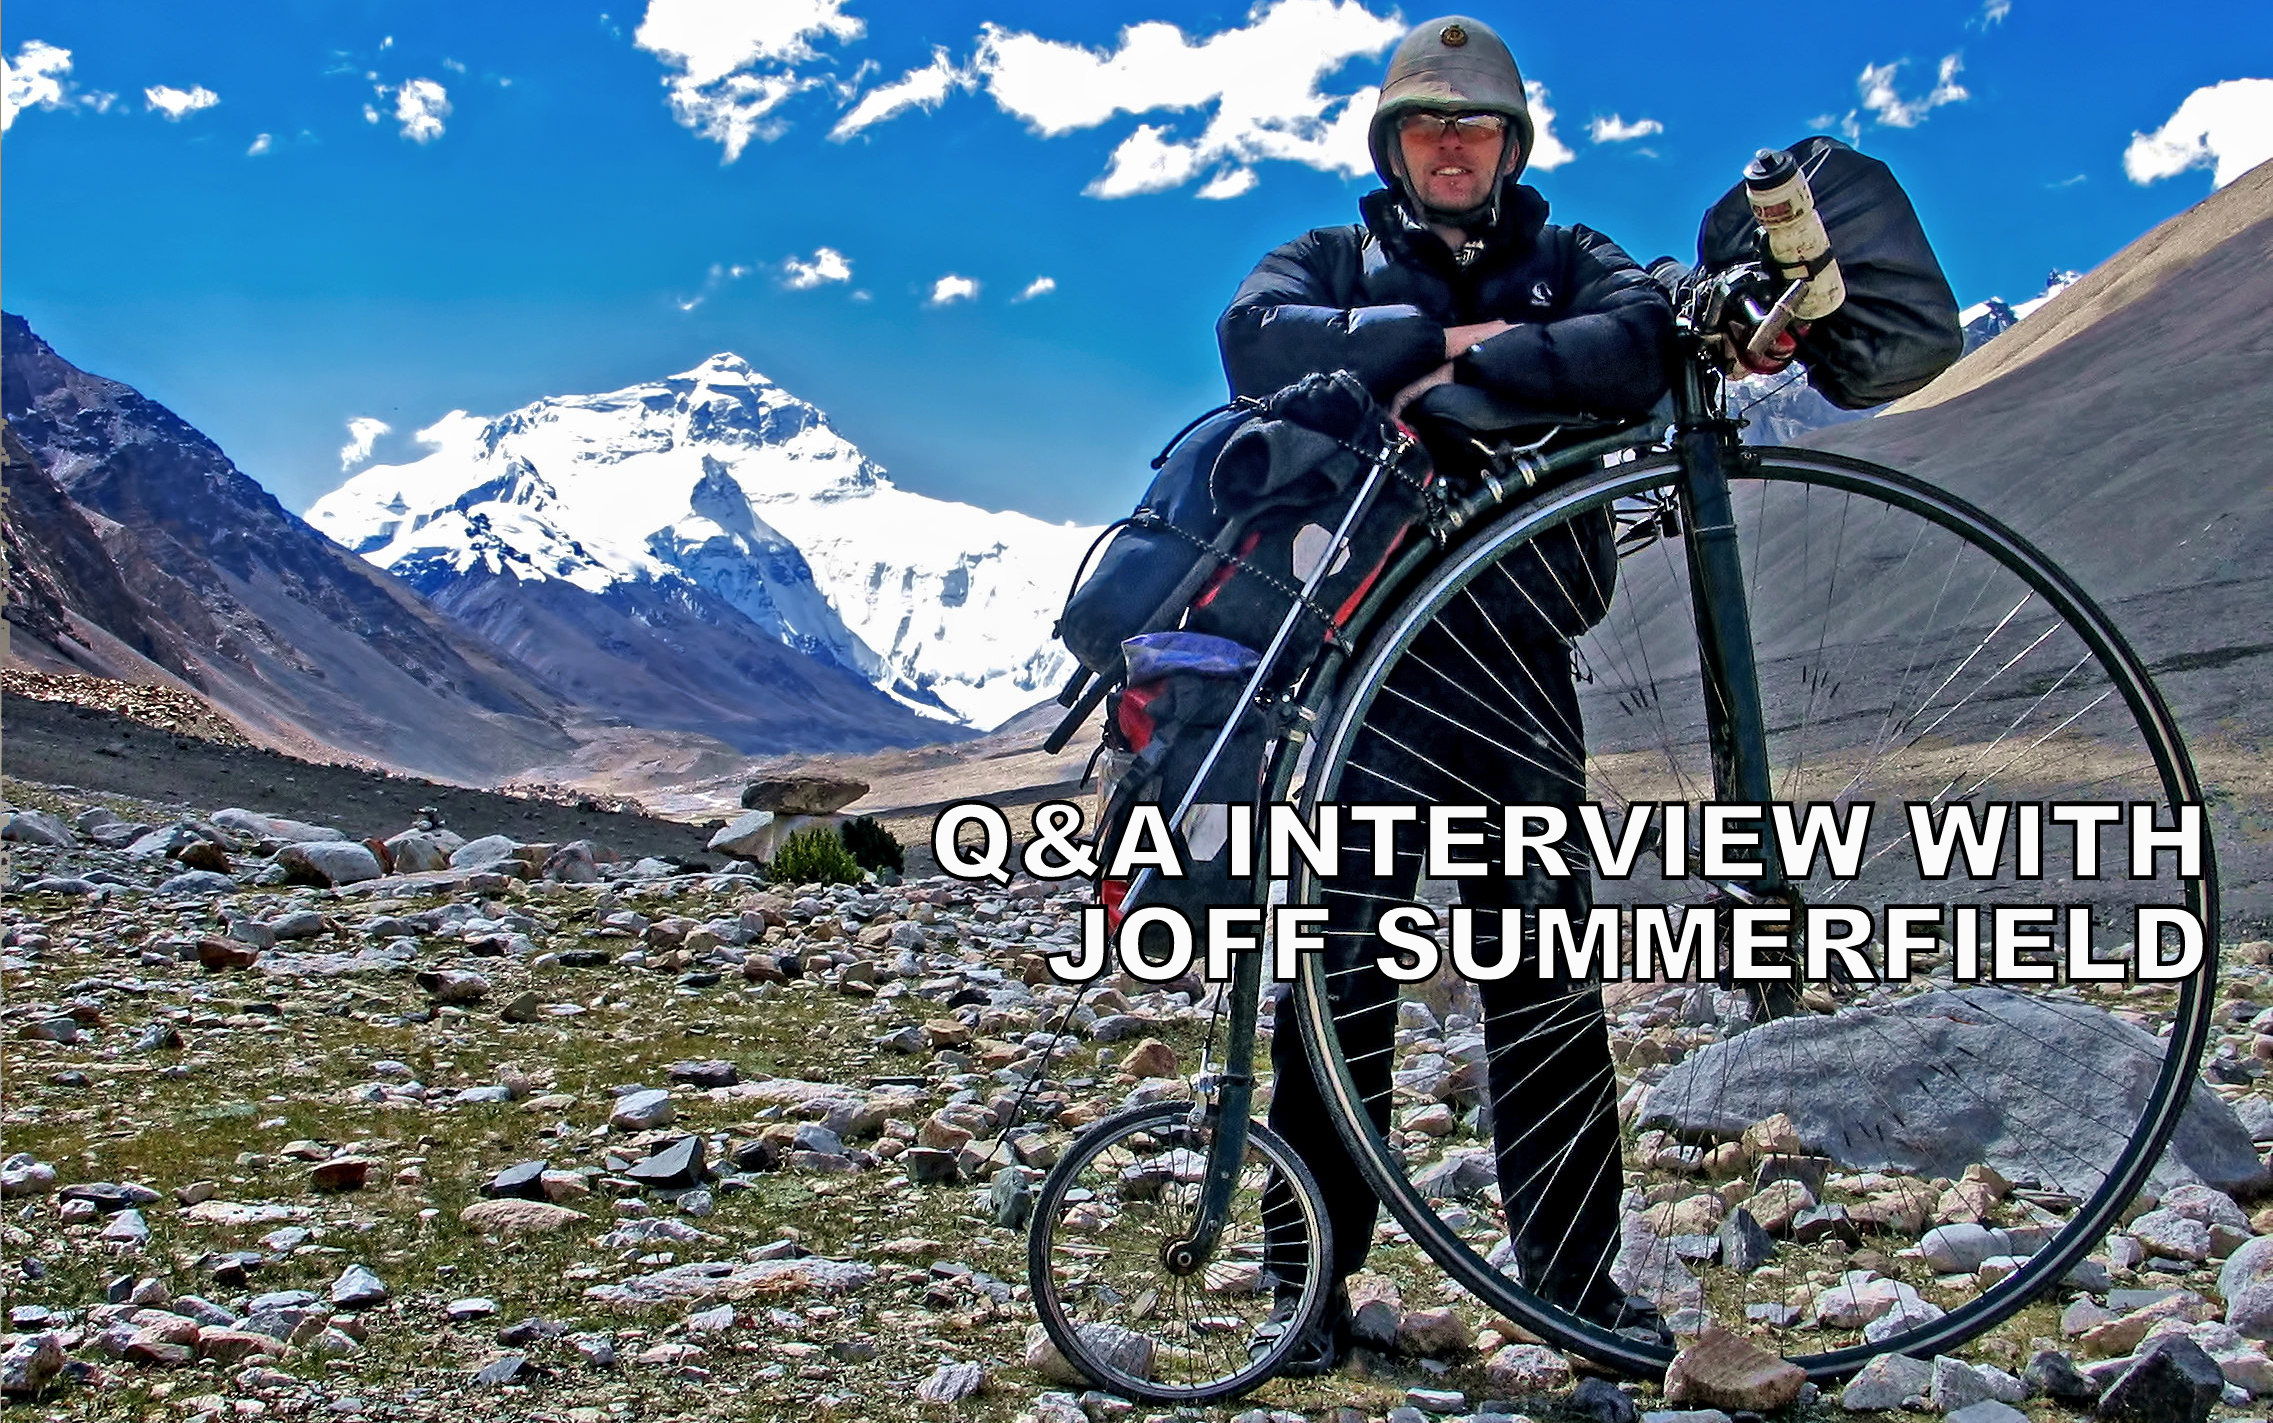 Q&A interview with Joff Summerfield